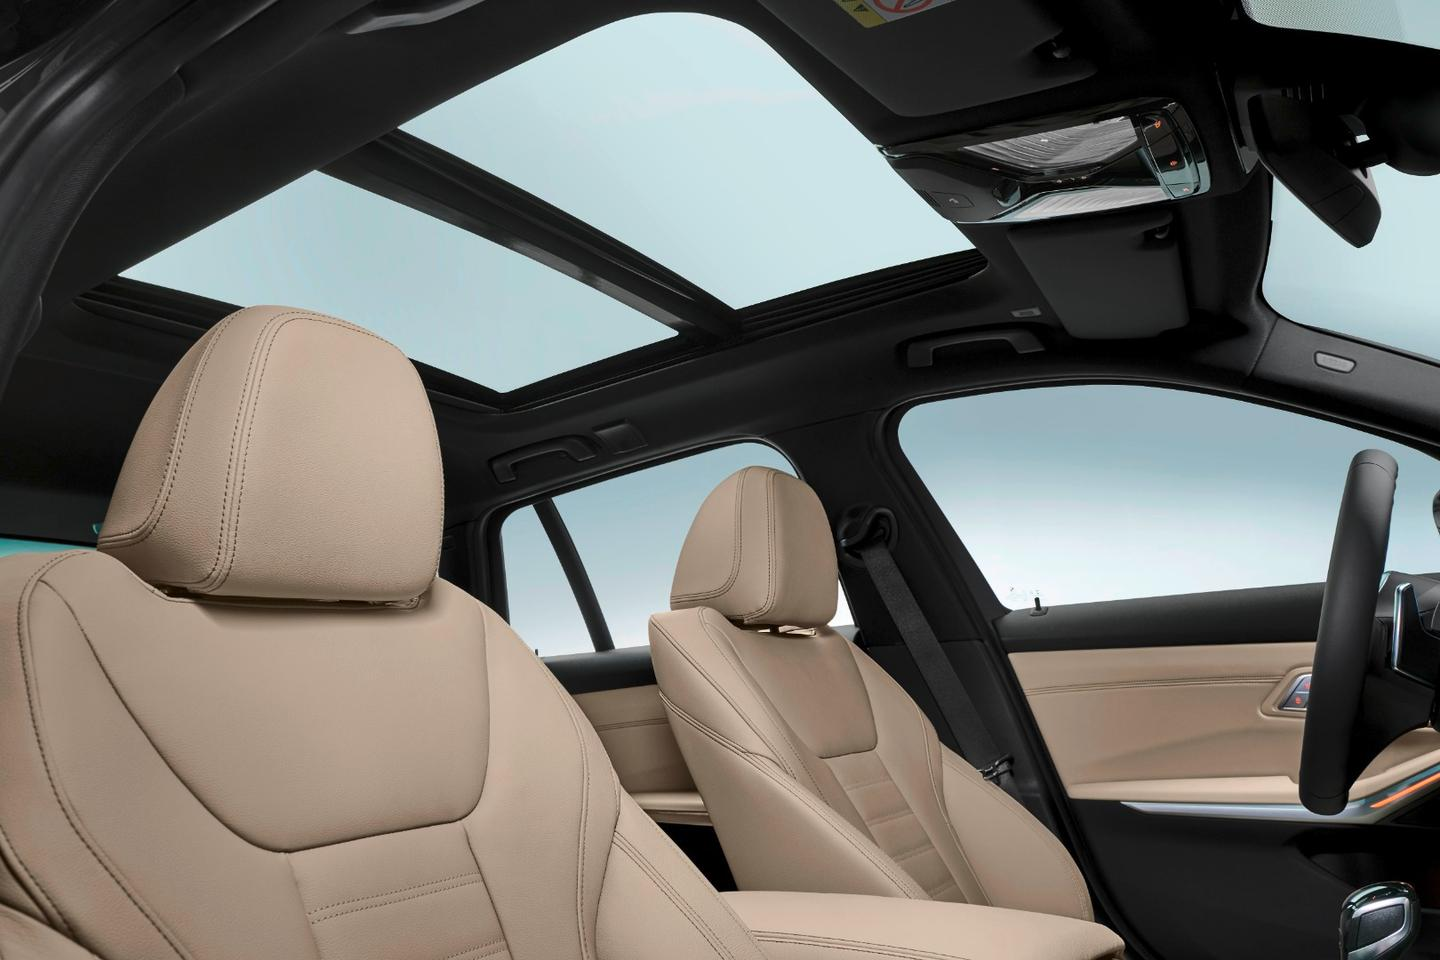 A dual-pane panoramic roof is offered in the new 3 Series Touring model